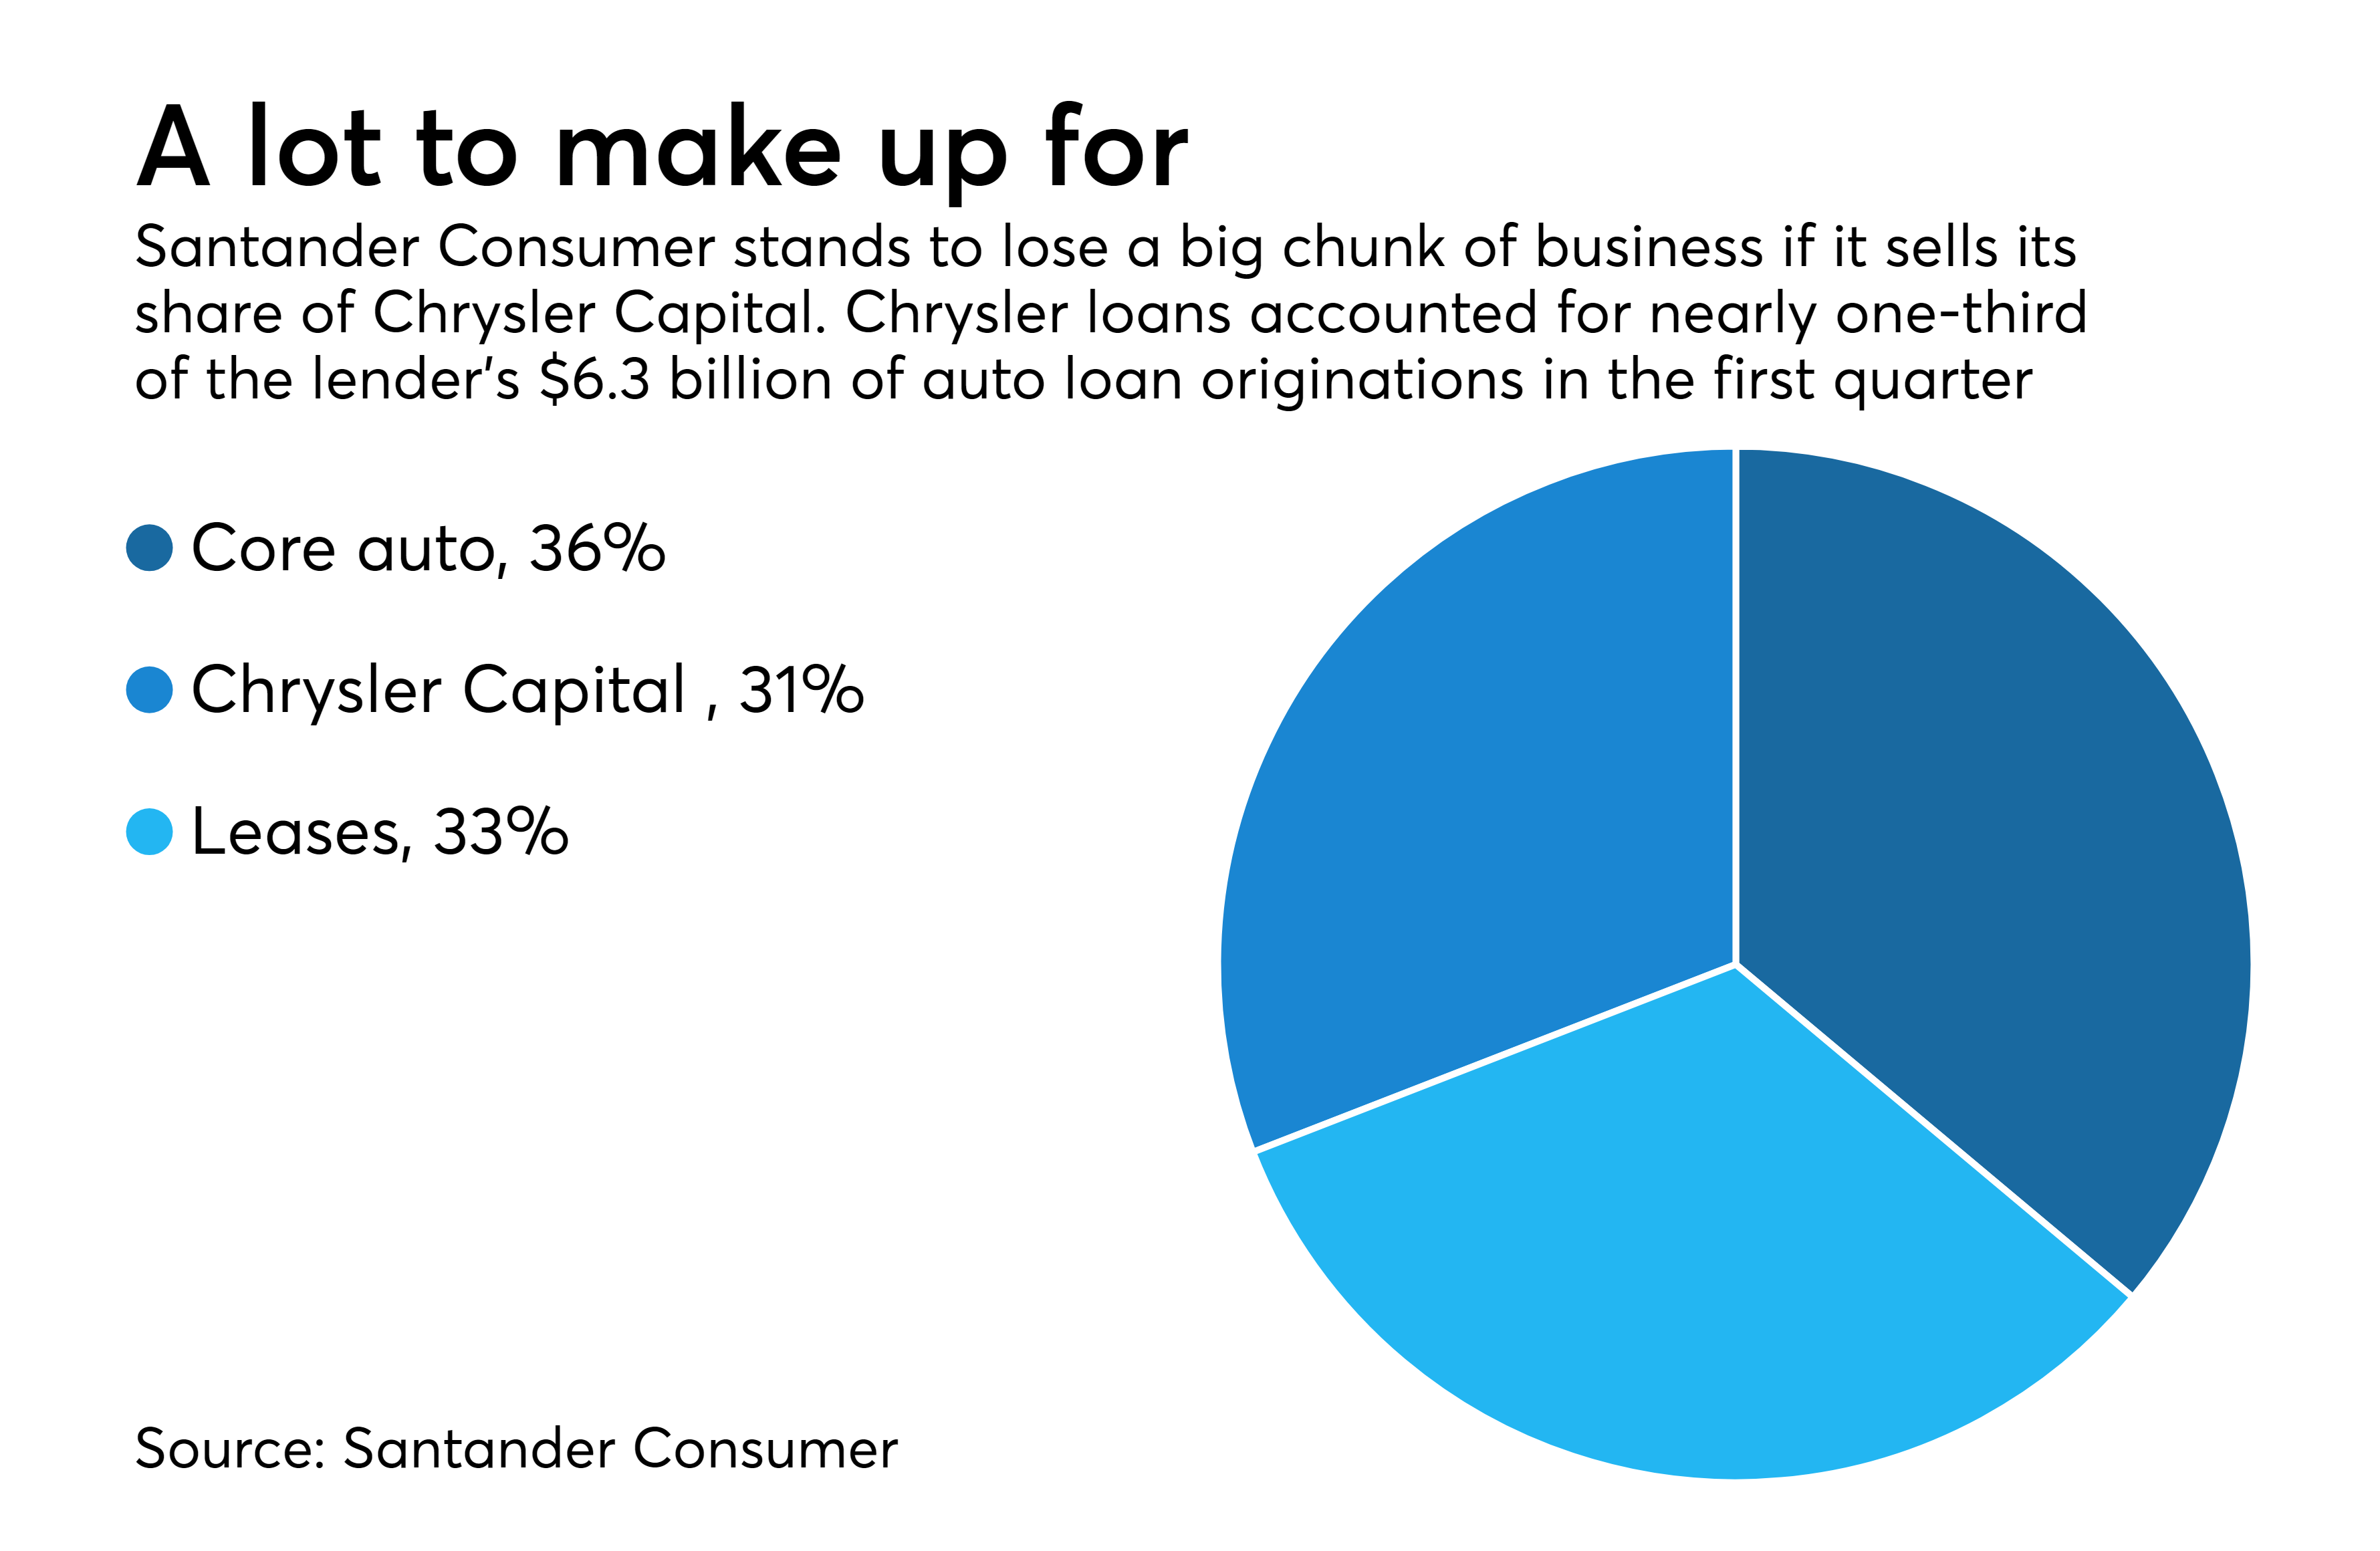 Losing Fiat Chrysler Would Threaten Santander Consumers